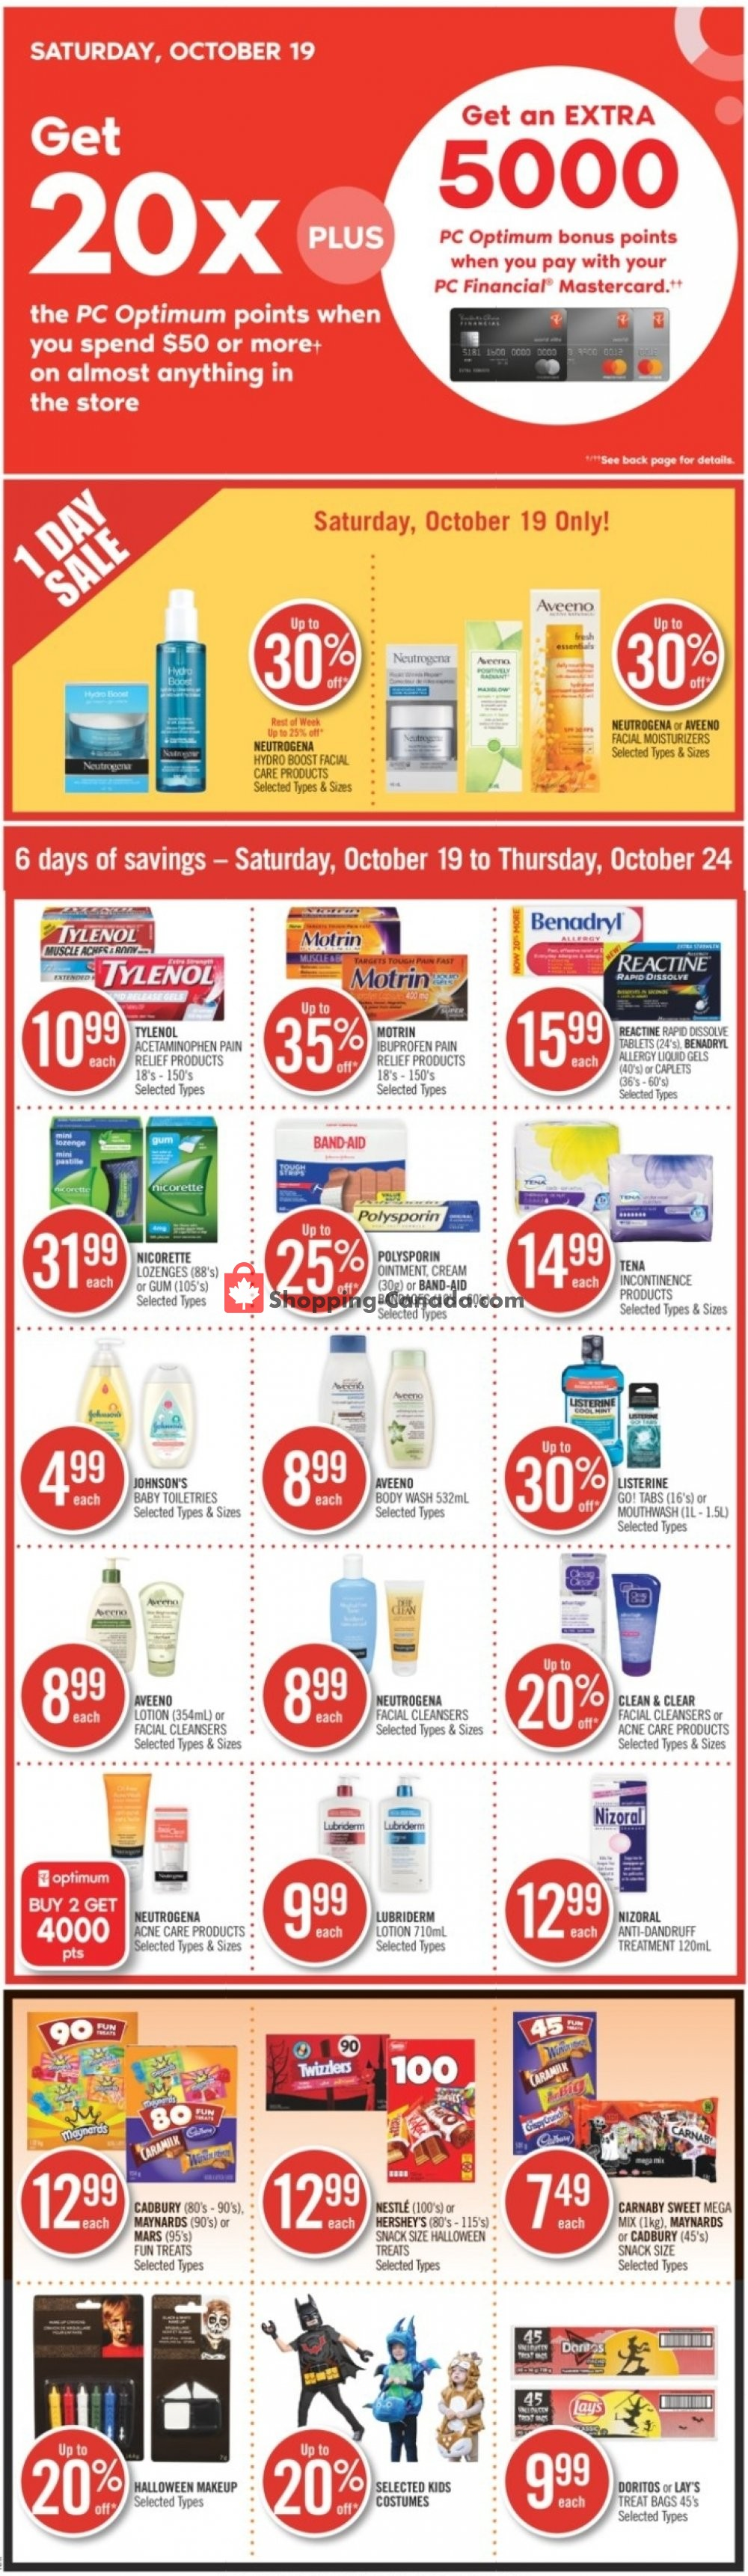 Flyer Shoppers Drug Mart Canada - from Saturday October 19, 2019 to Thursday October 24, 2019